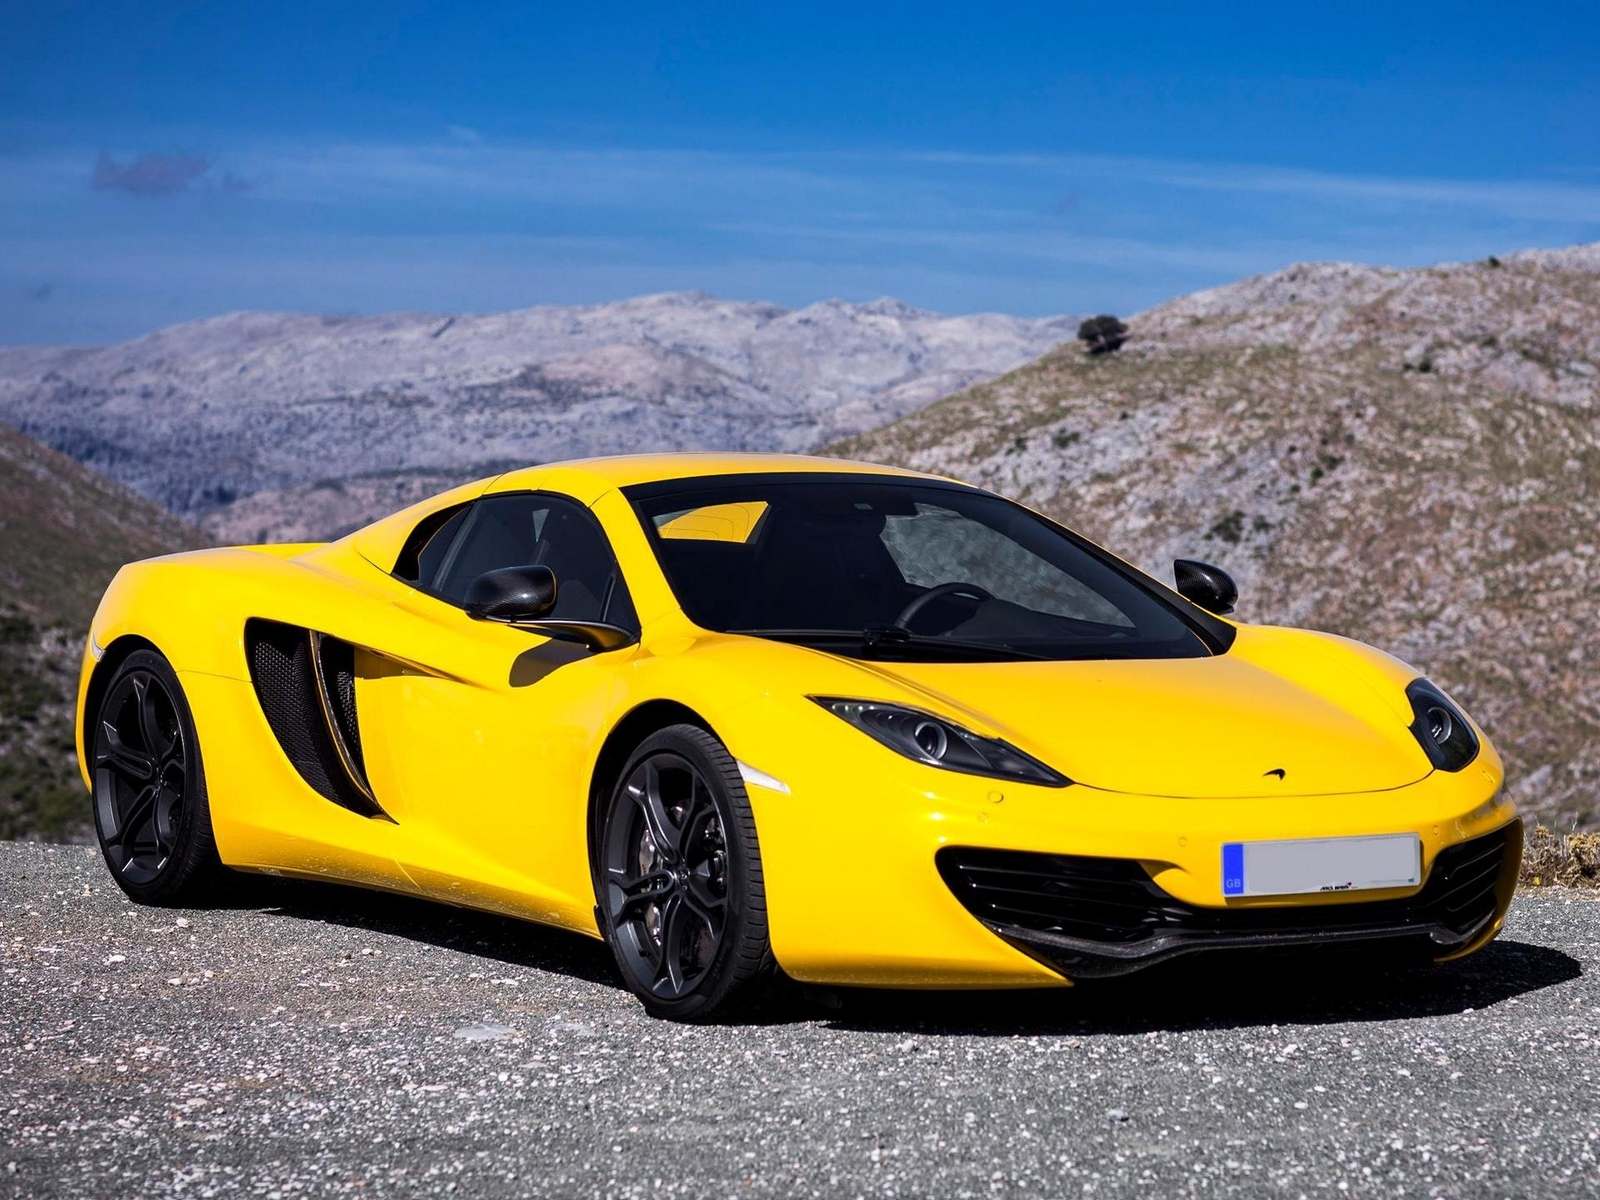 wallpapers, обоя, yellow, new, spyder, car, mp4-12c, автомобиль, mclaren, 2012